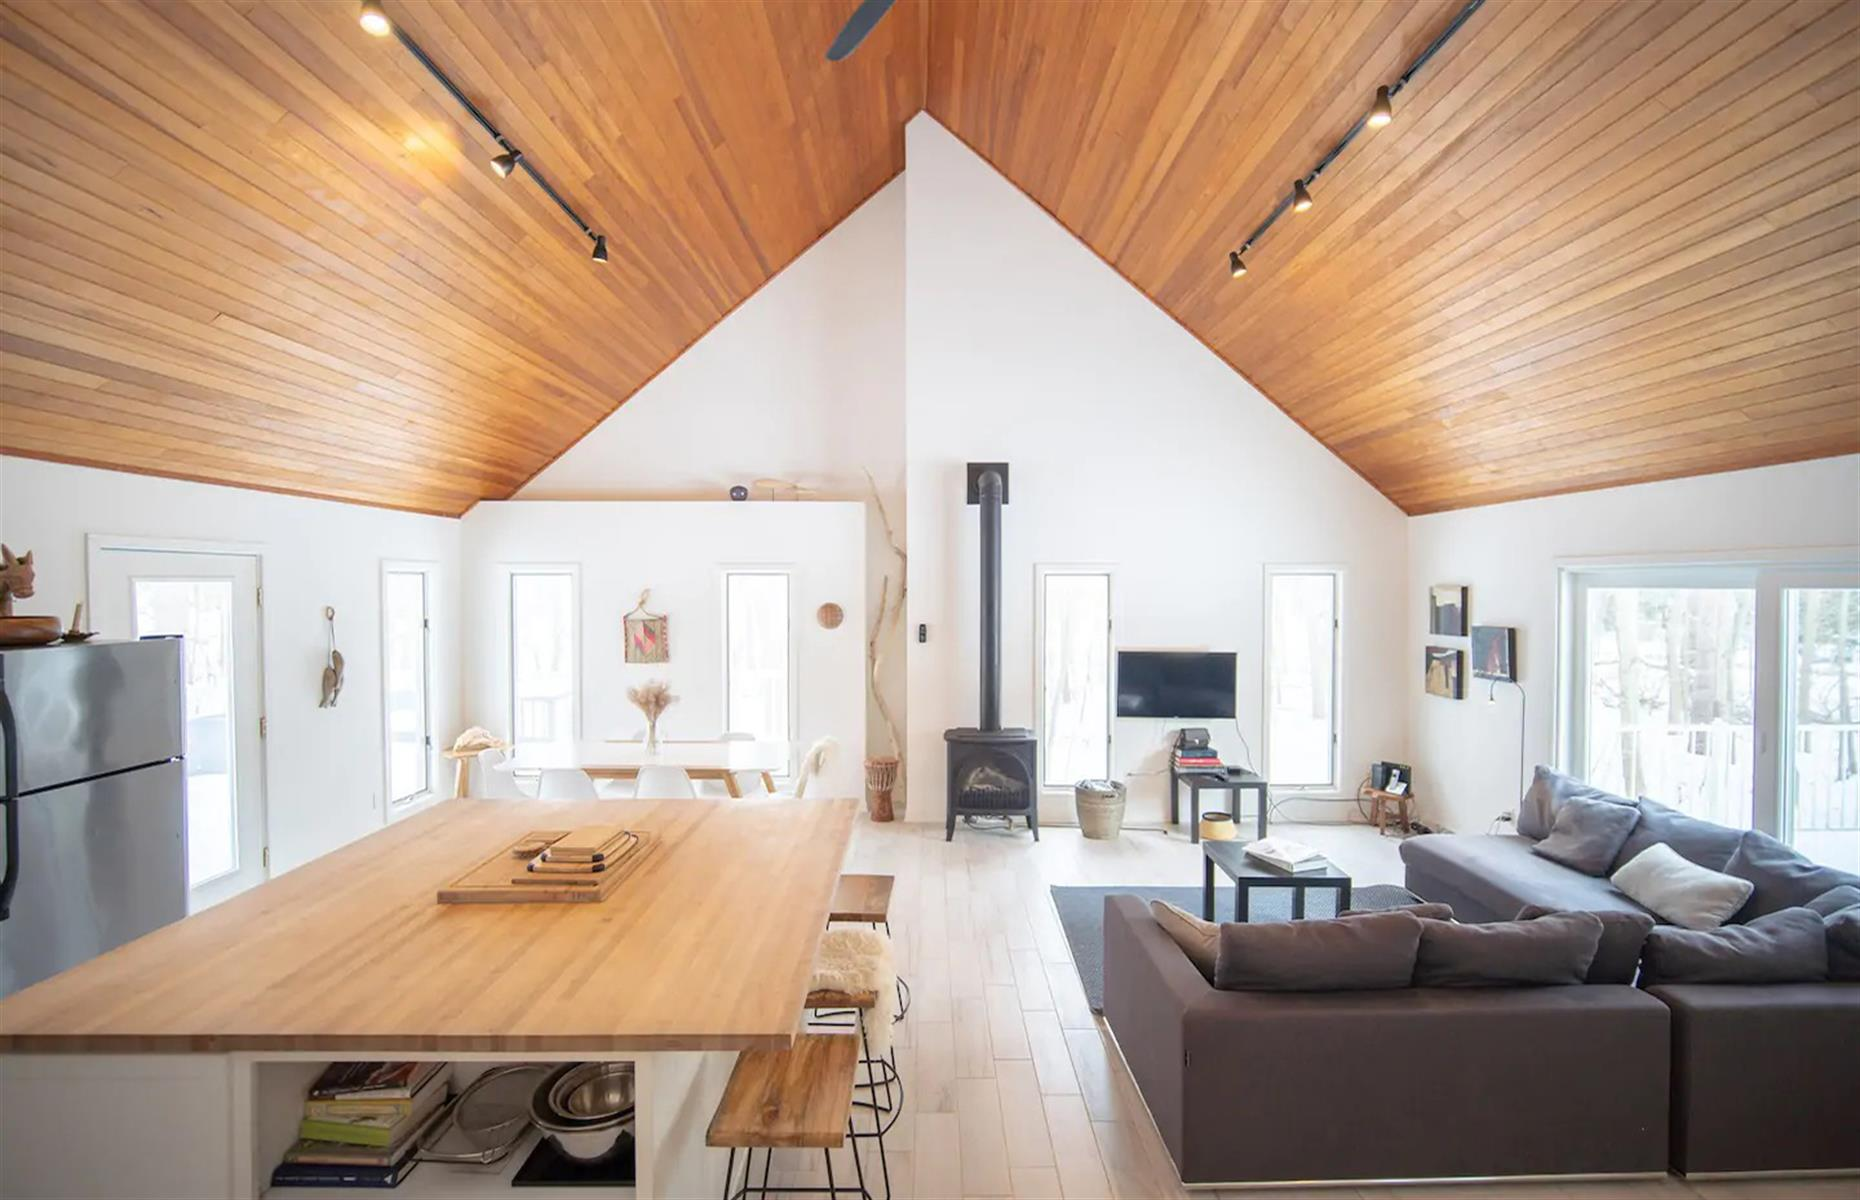 Slide 24 of 52: A calming break awaits at this cottage by Lake Michigan in Holland. The five-bedroom home is within walking distance of James Street beach and conveniently located for exploring the rest of the area. Inside, the stylish interior is flooded with natural light. Pull up a stool at the modern kitchen island for lazy brunches and intimate dinners.